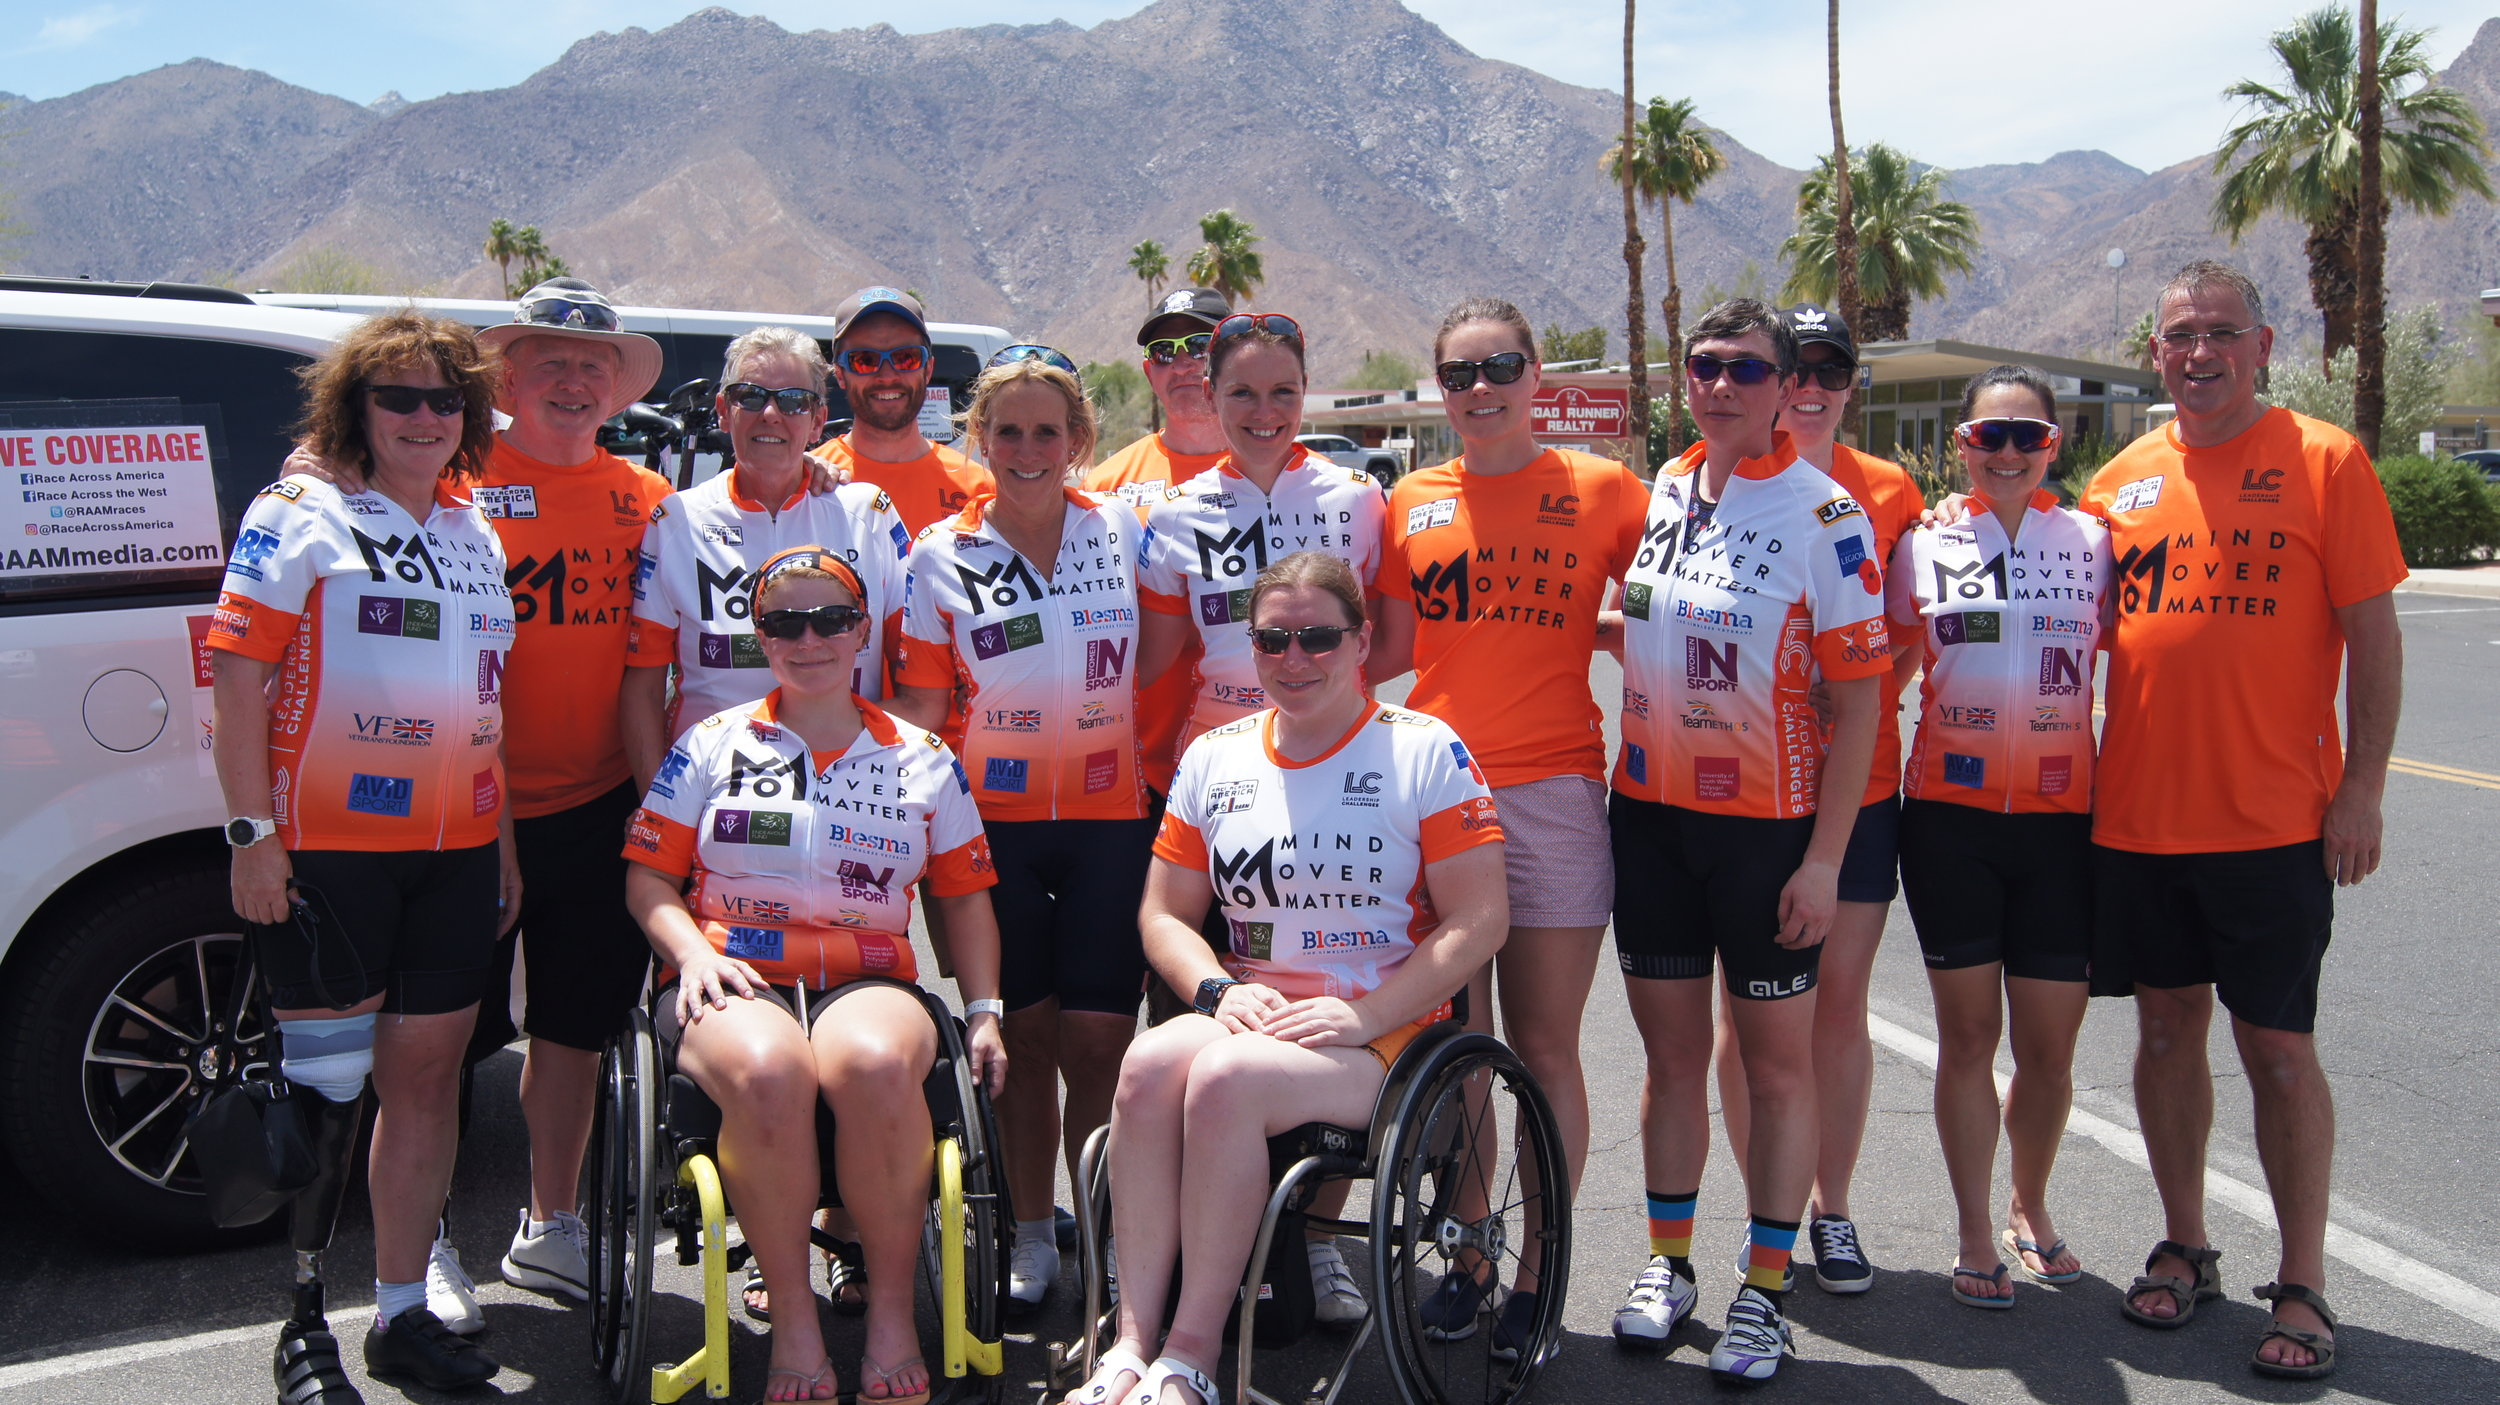 Riders and support team after the descent into the desert